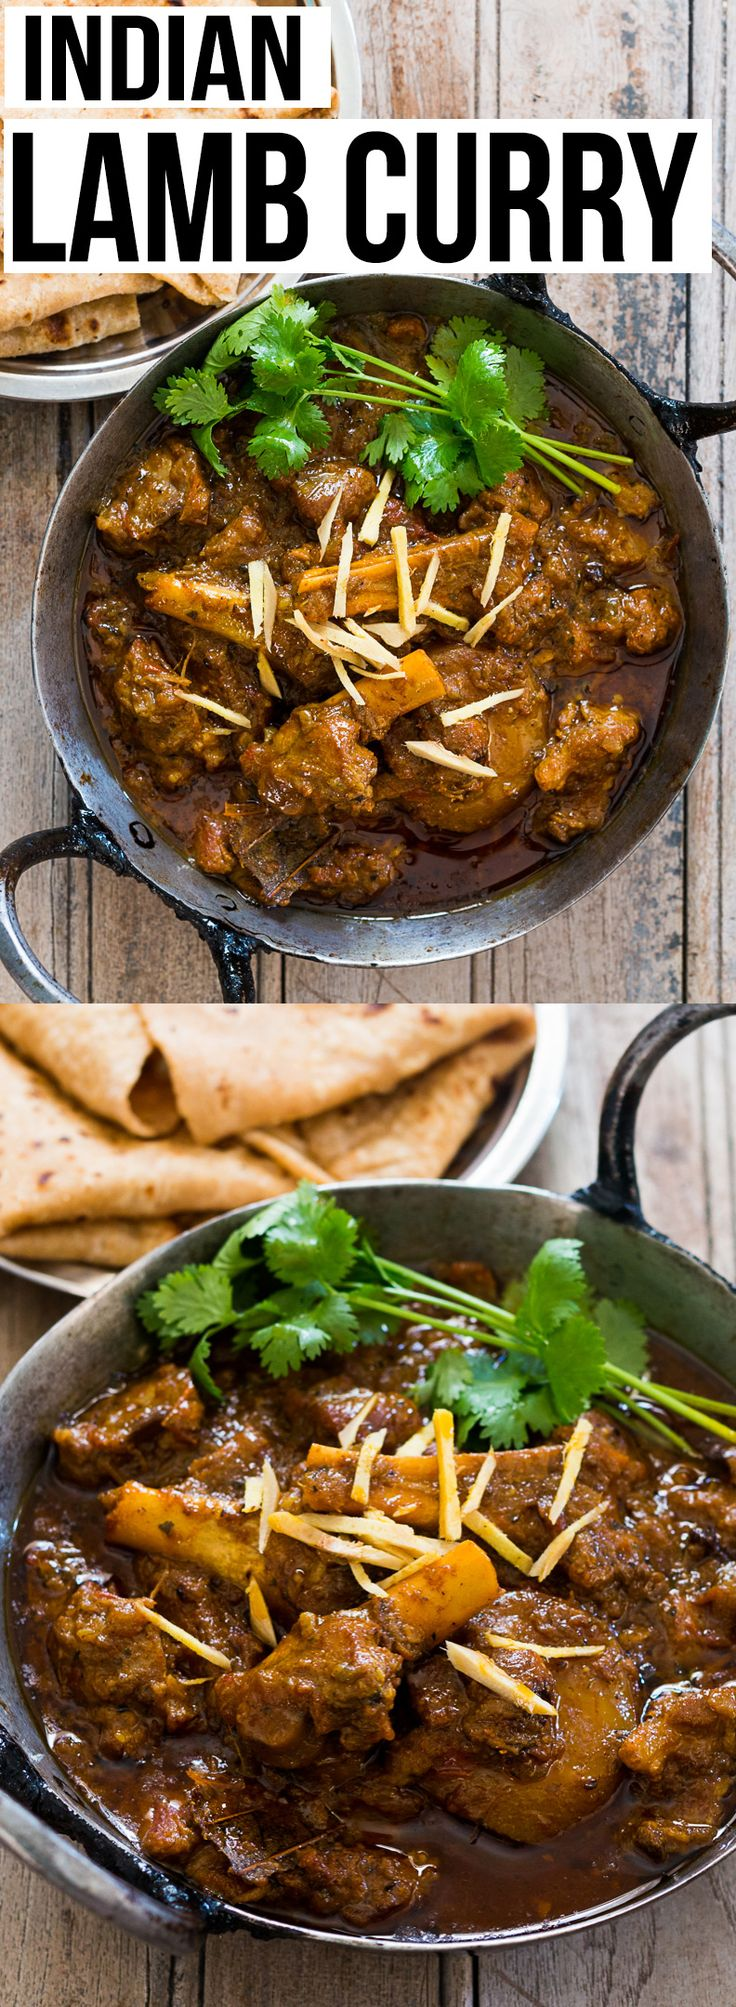 2283 best indian recipes images on pinterest indian recipes this easy indian mutton curry will soon become your favorite bowl of comfort food made in a pressure cooker and perfect with basmati rice my food story forumfinder Gallery